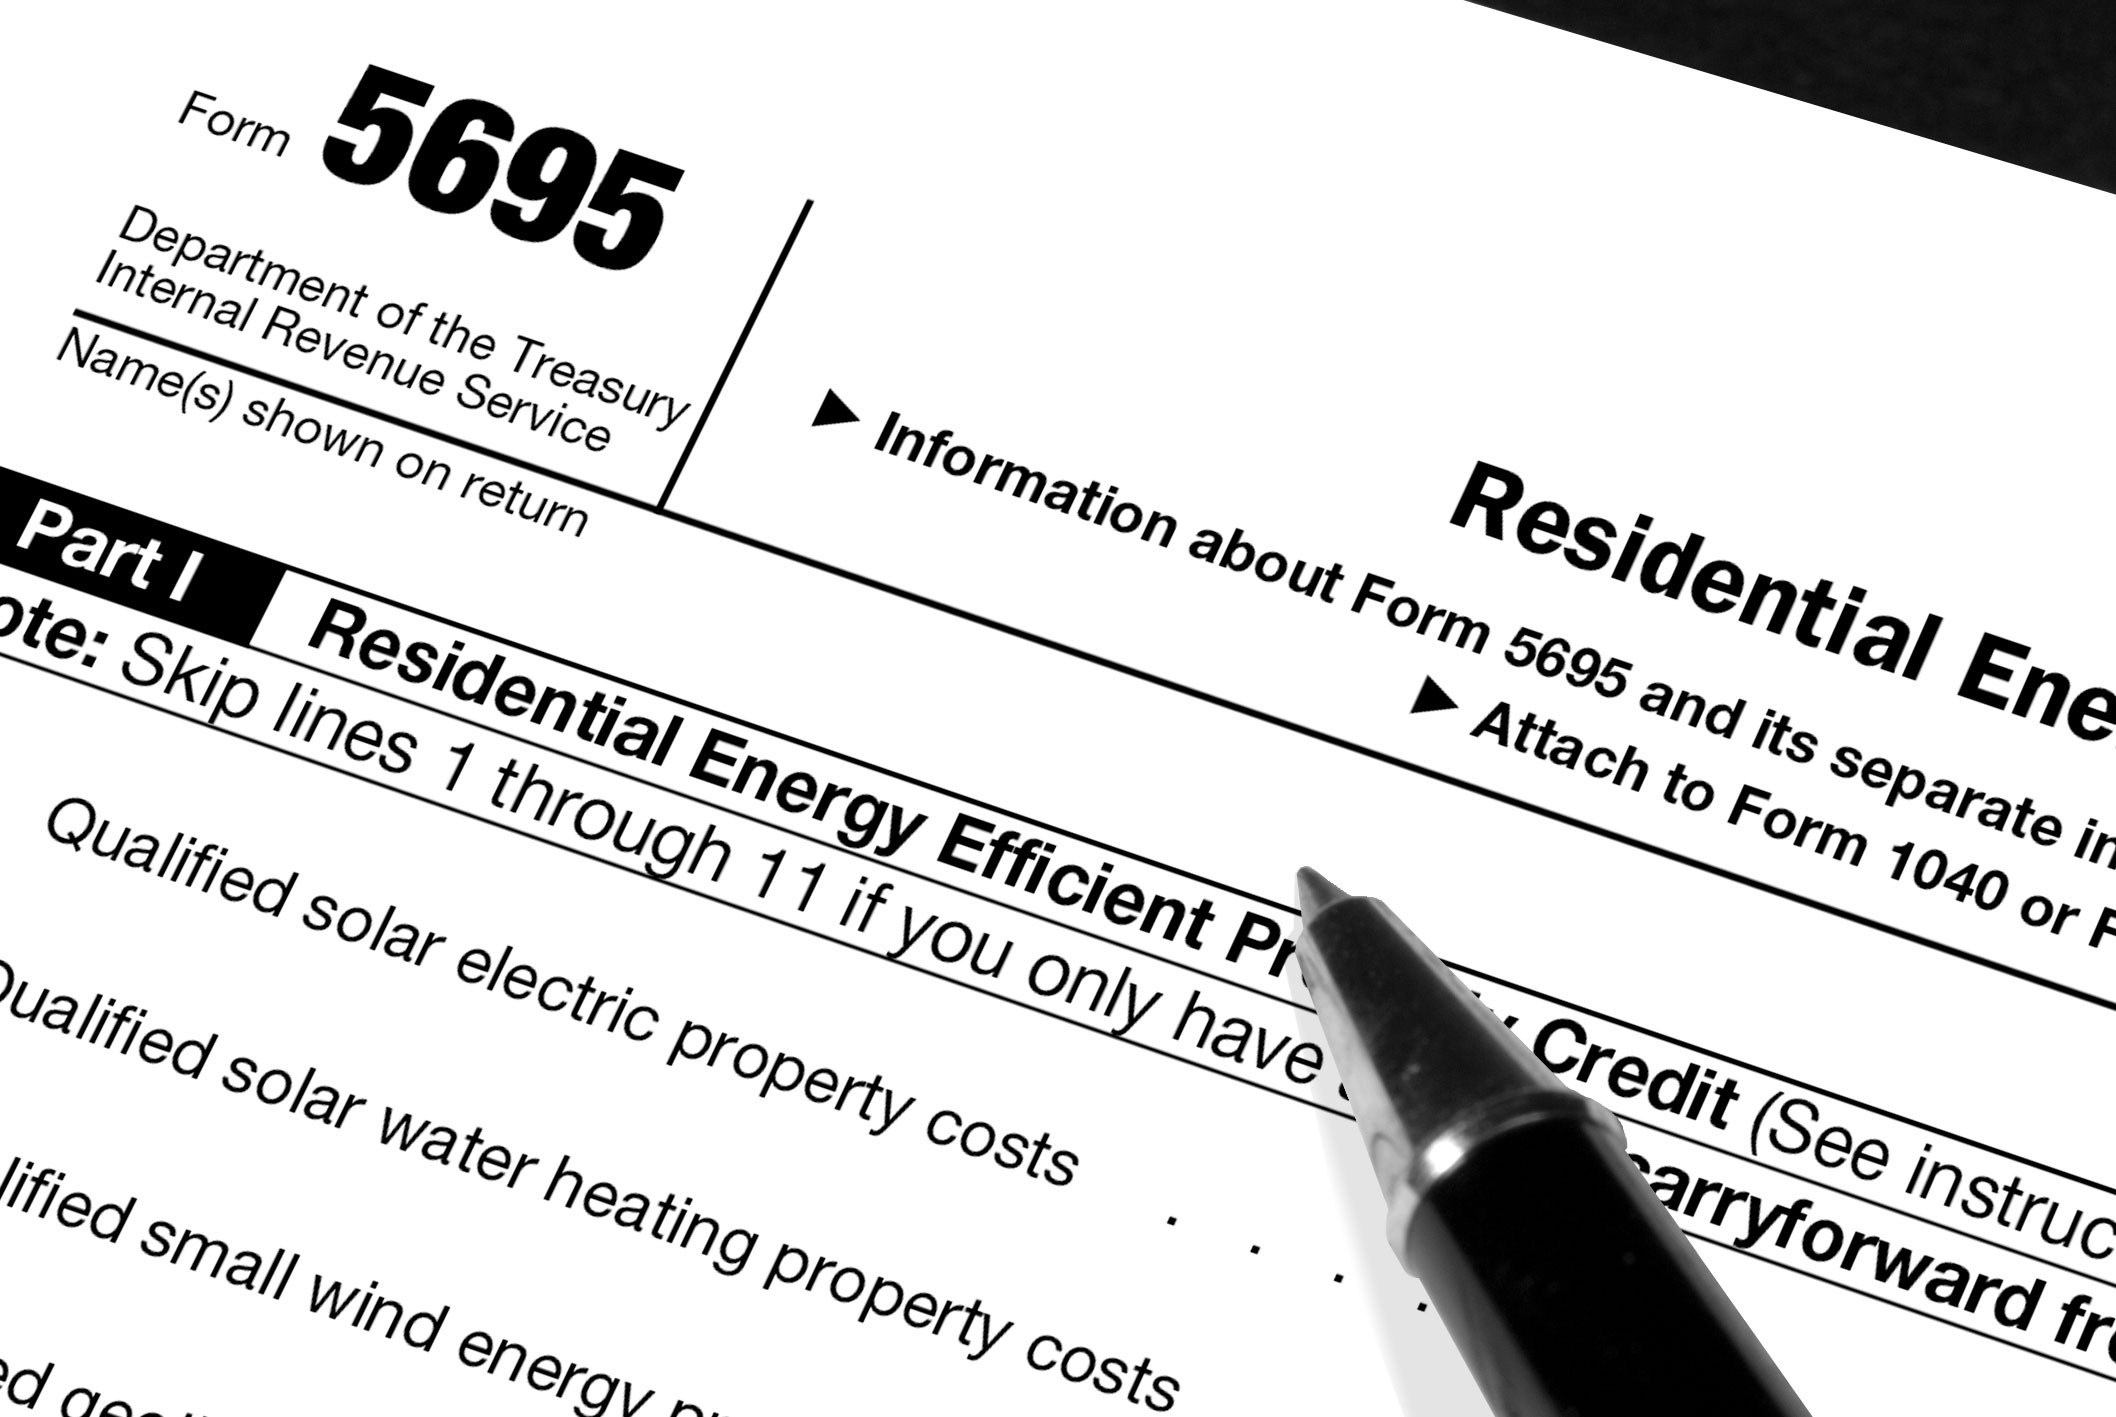 Residential Energy Efficient Property Credit Limit